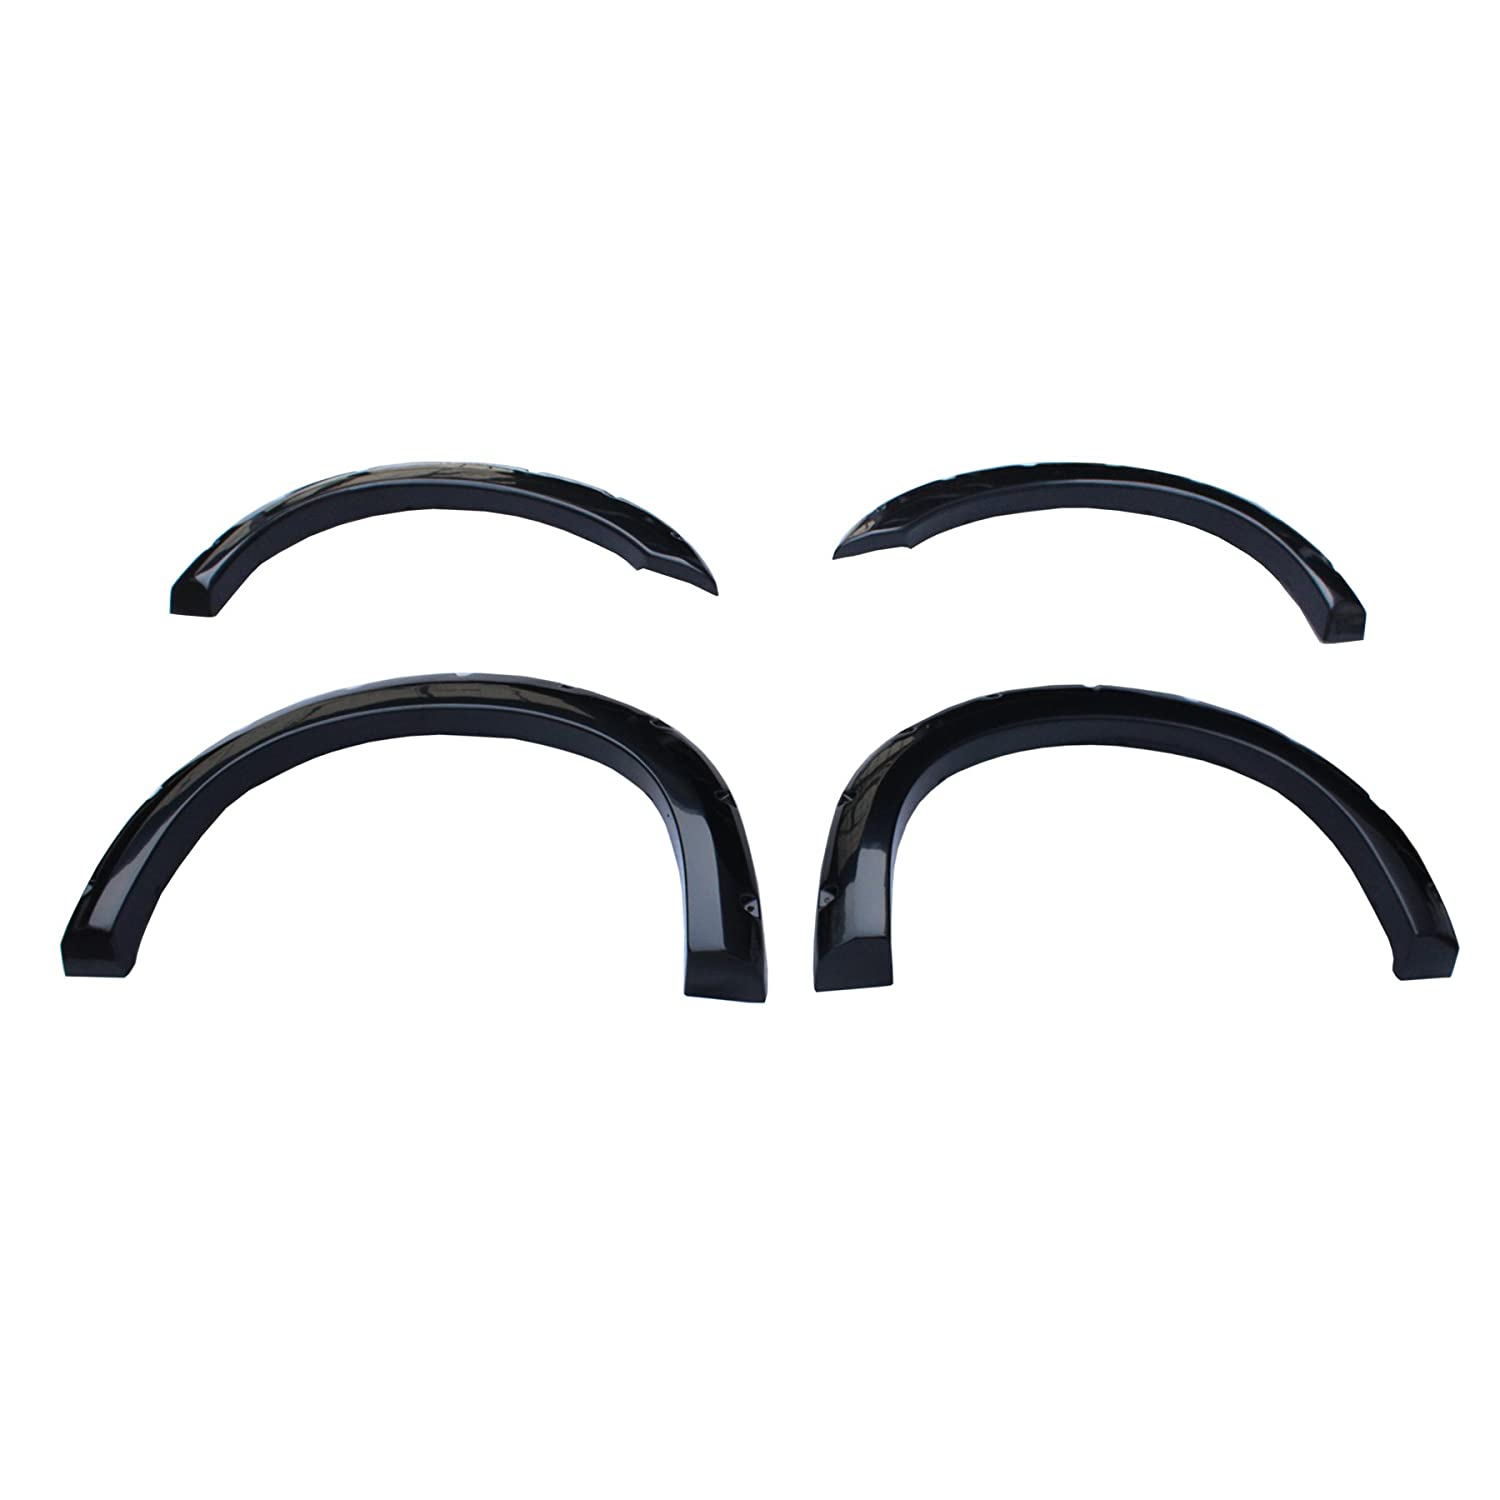 F350 Super Duty CAREPAIR 4pcs Front and Rear Smooth Black Aftermarket Pocket Riveted ABS Fender Flares for 1999-2007 Ford F250